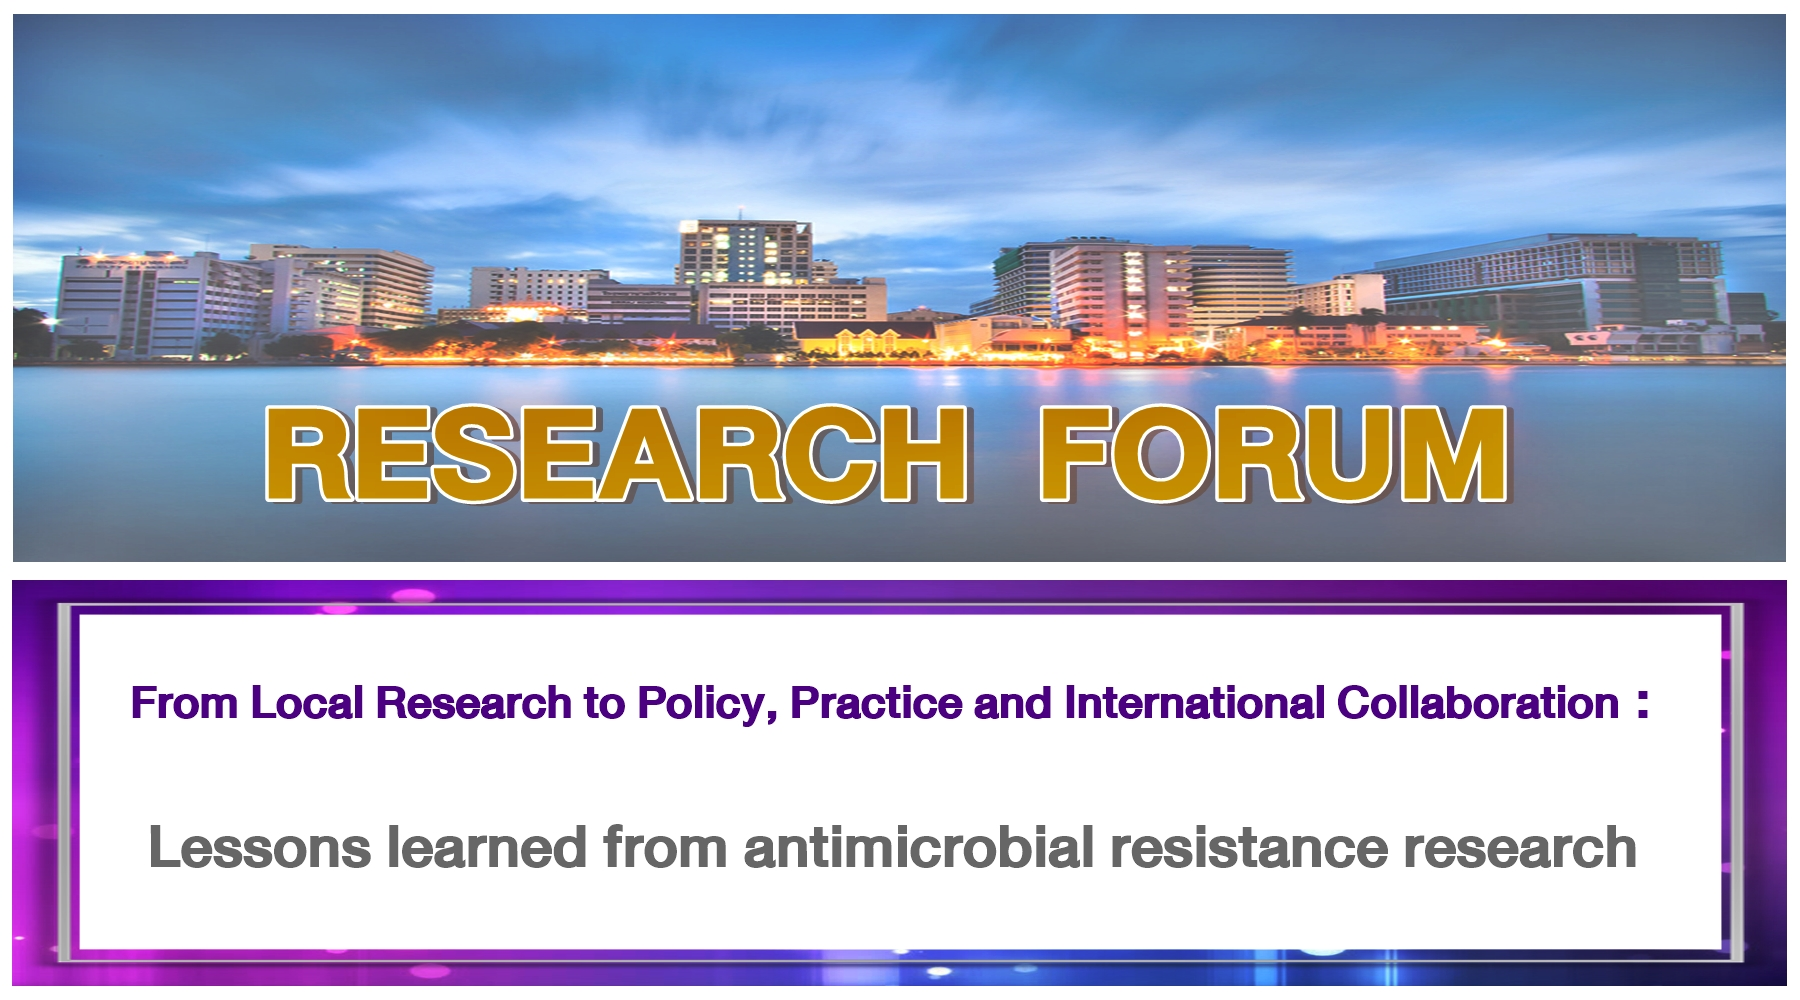 From Local Research to Policy, Practice and International Collaboration : Lessons learned from antimicrobial resistance research